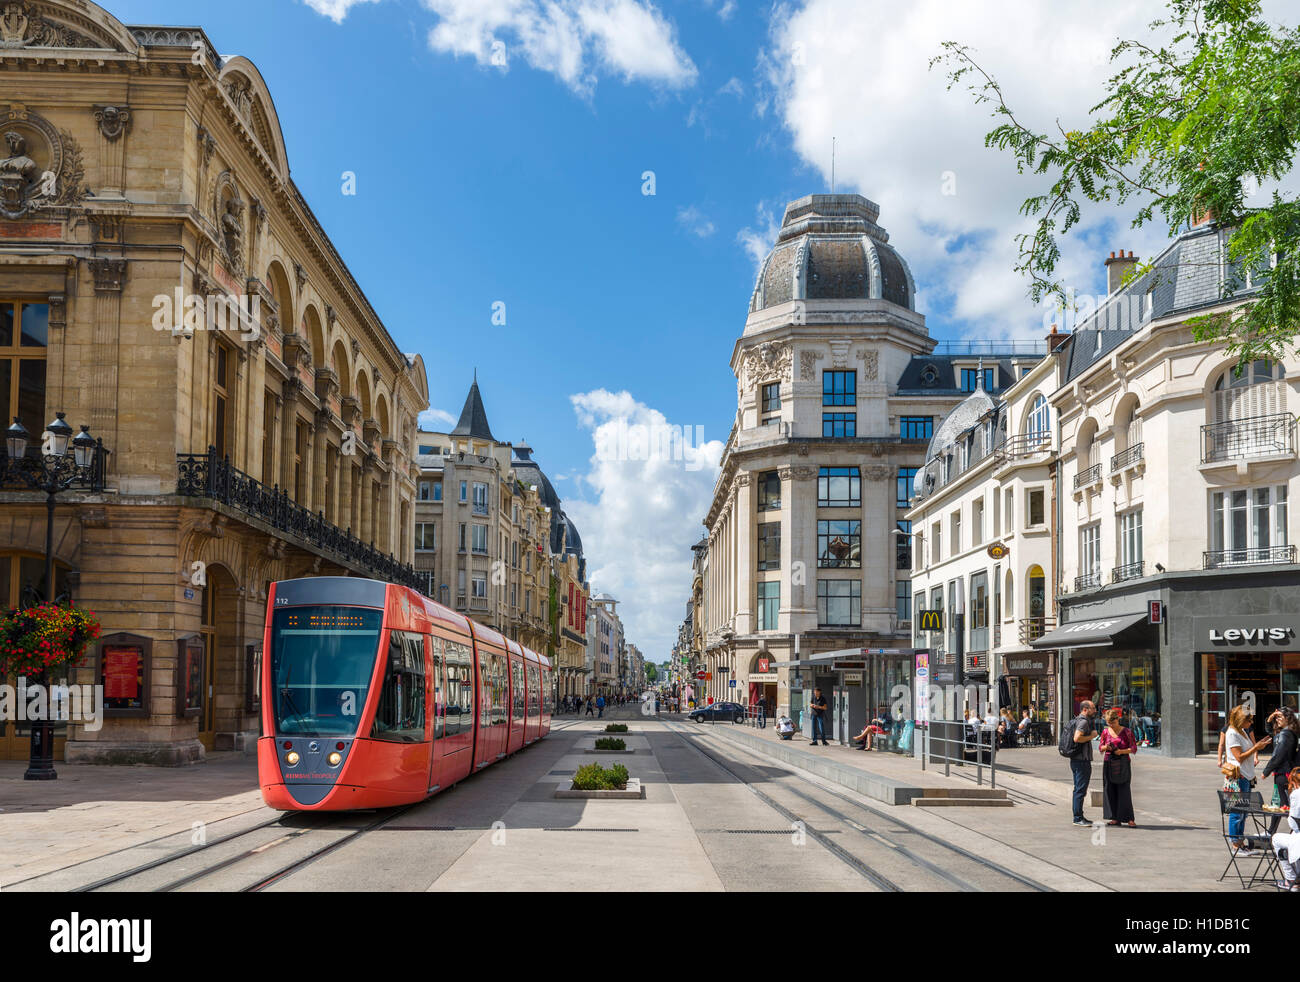 Tram and shops in the city centre, Place Myron Herrick, Reims, France - Stock Image